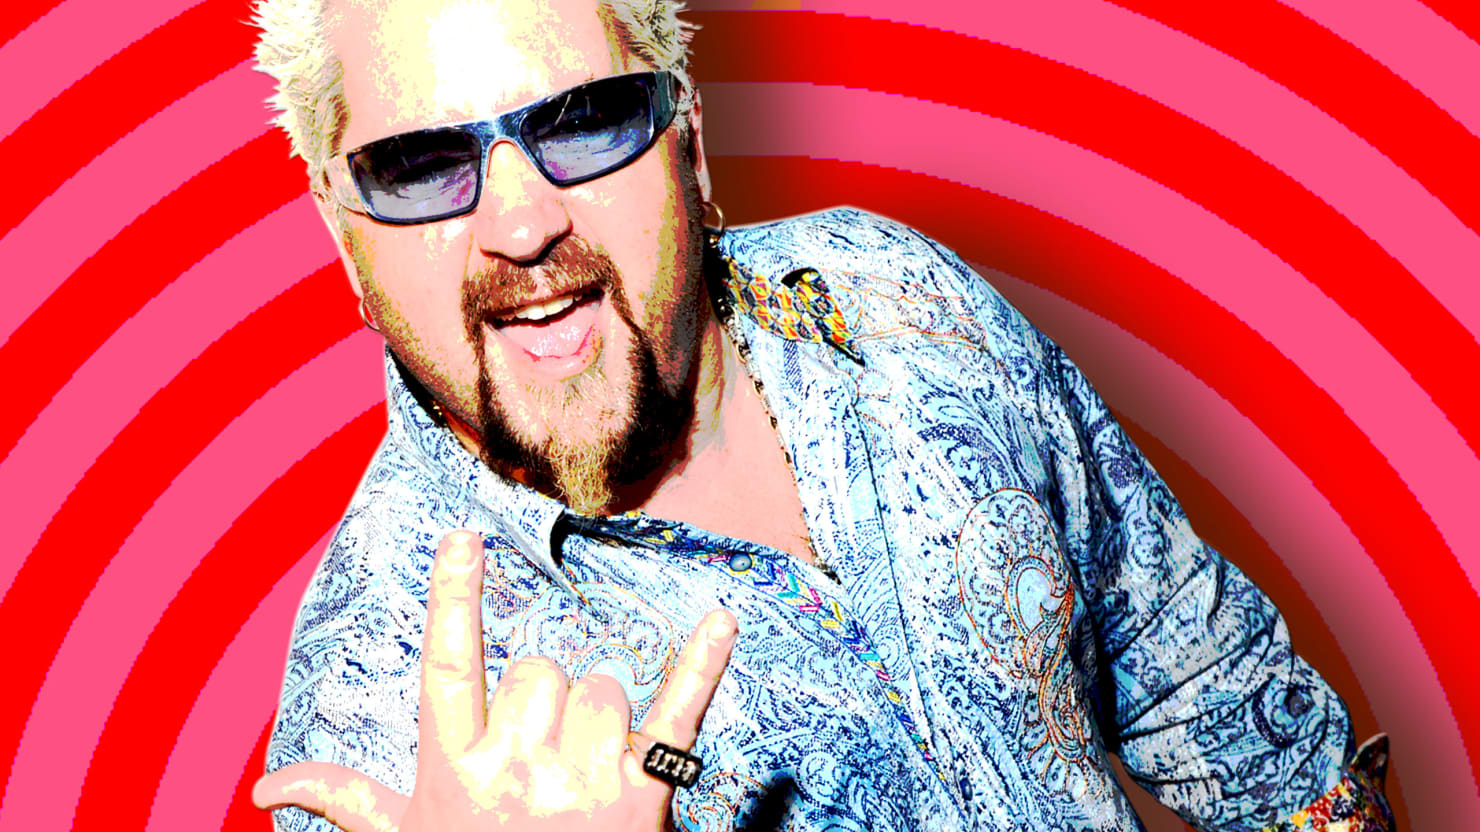 Why You Should Buy the Food Network's Guy Fieri a Drink